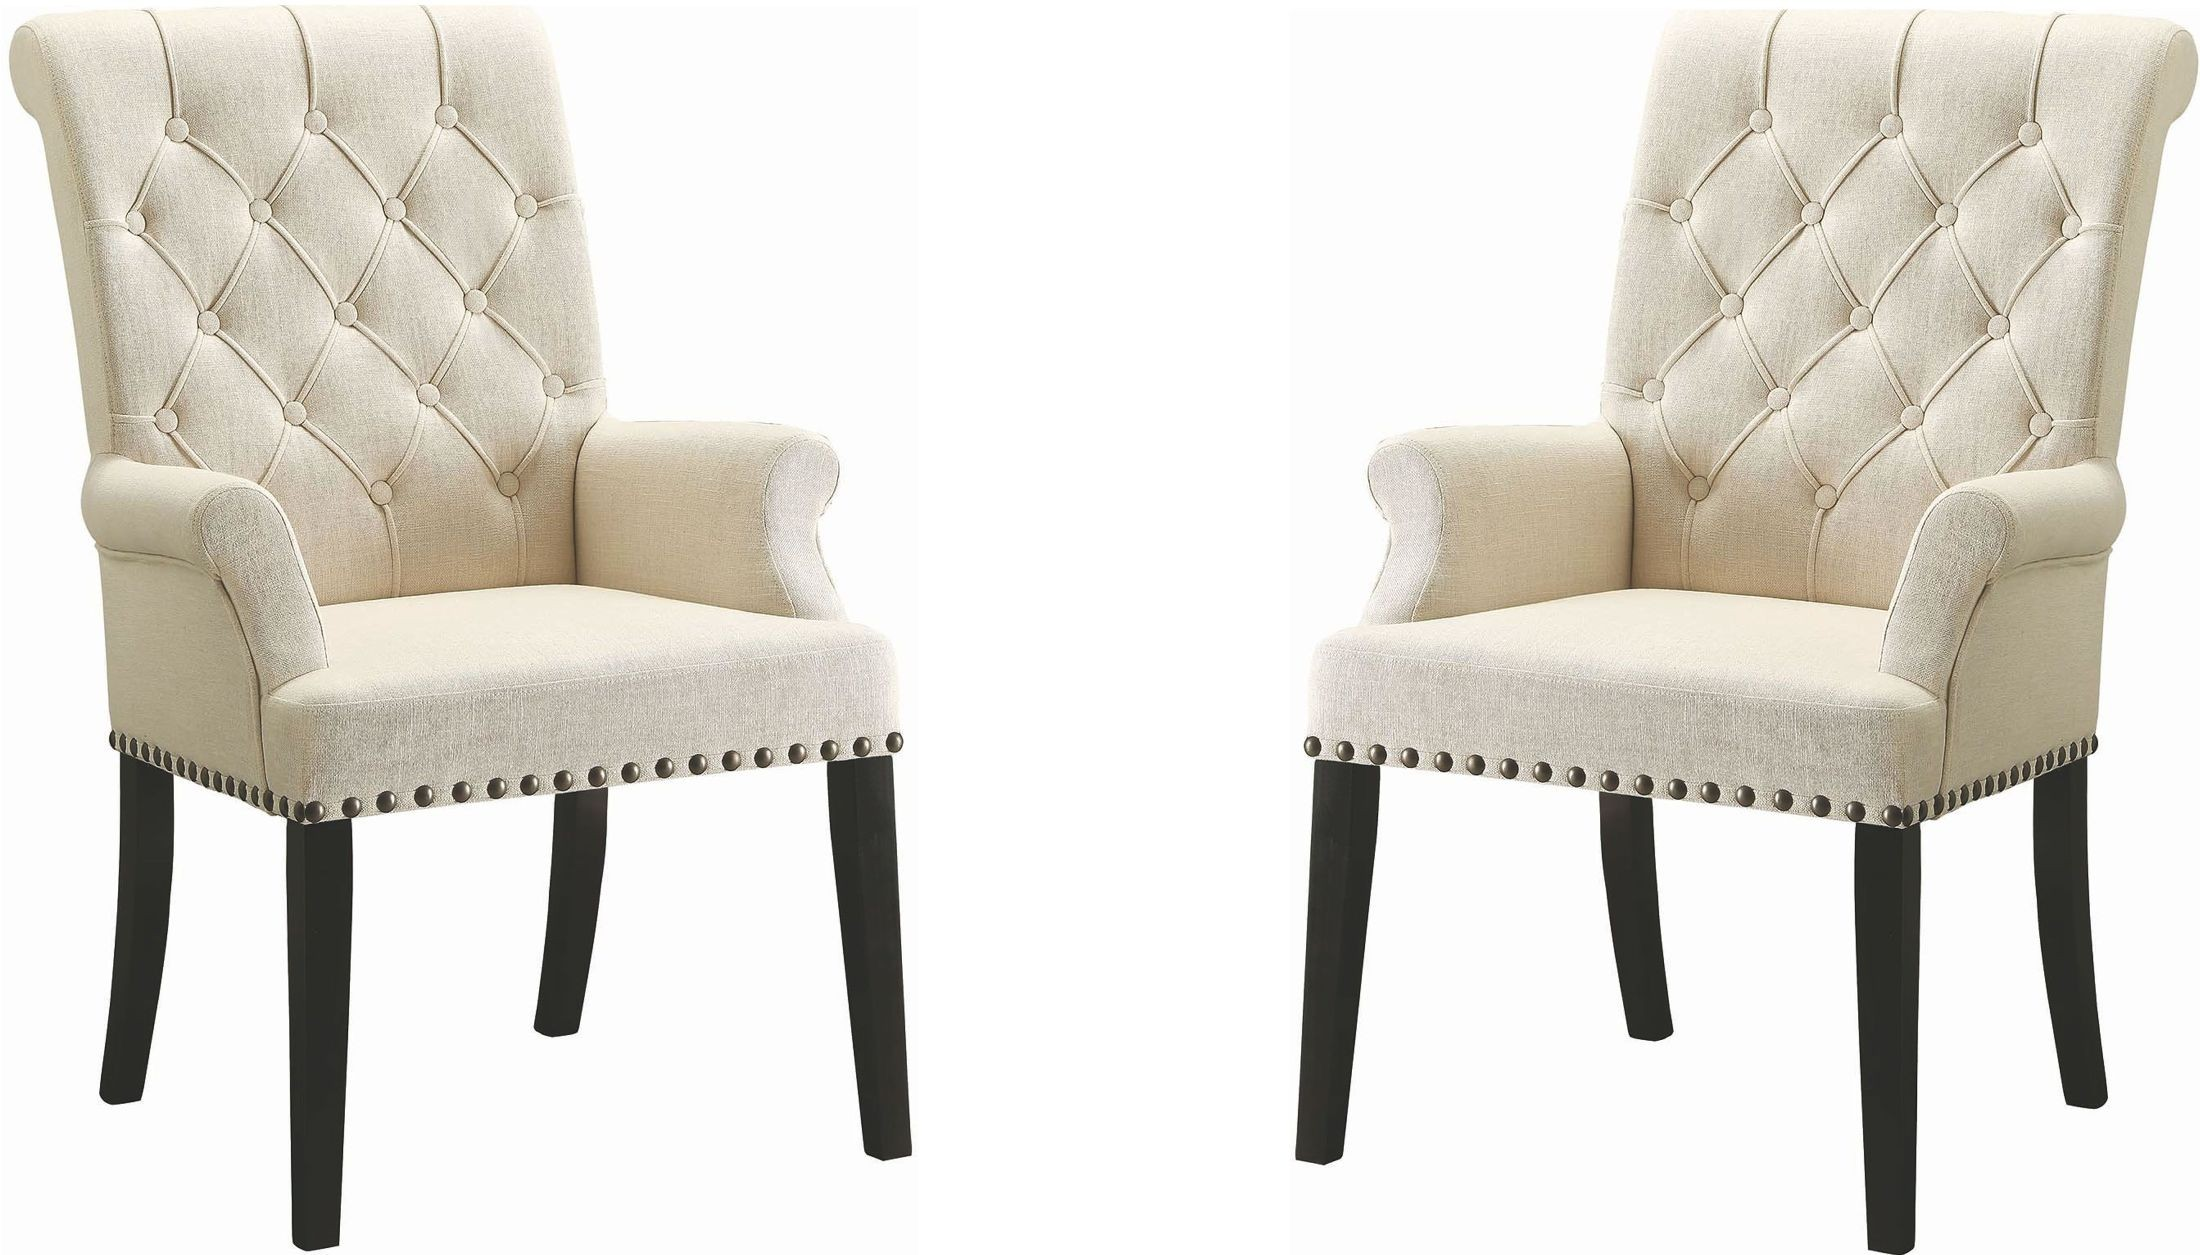 cream upholstered chair parkins cream upholstered arm chair from coaster coleman 13626 | 190163 av1 set of 2